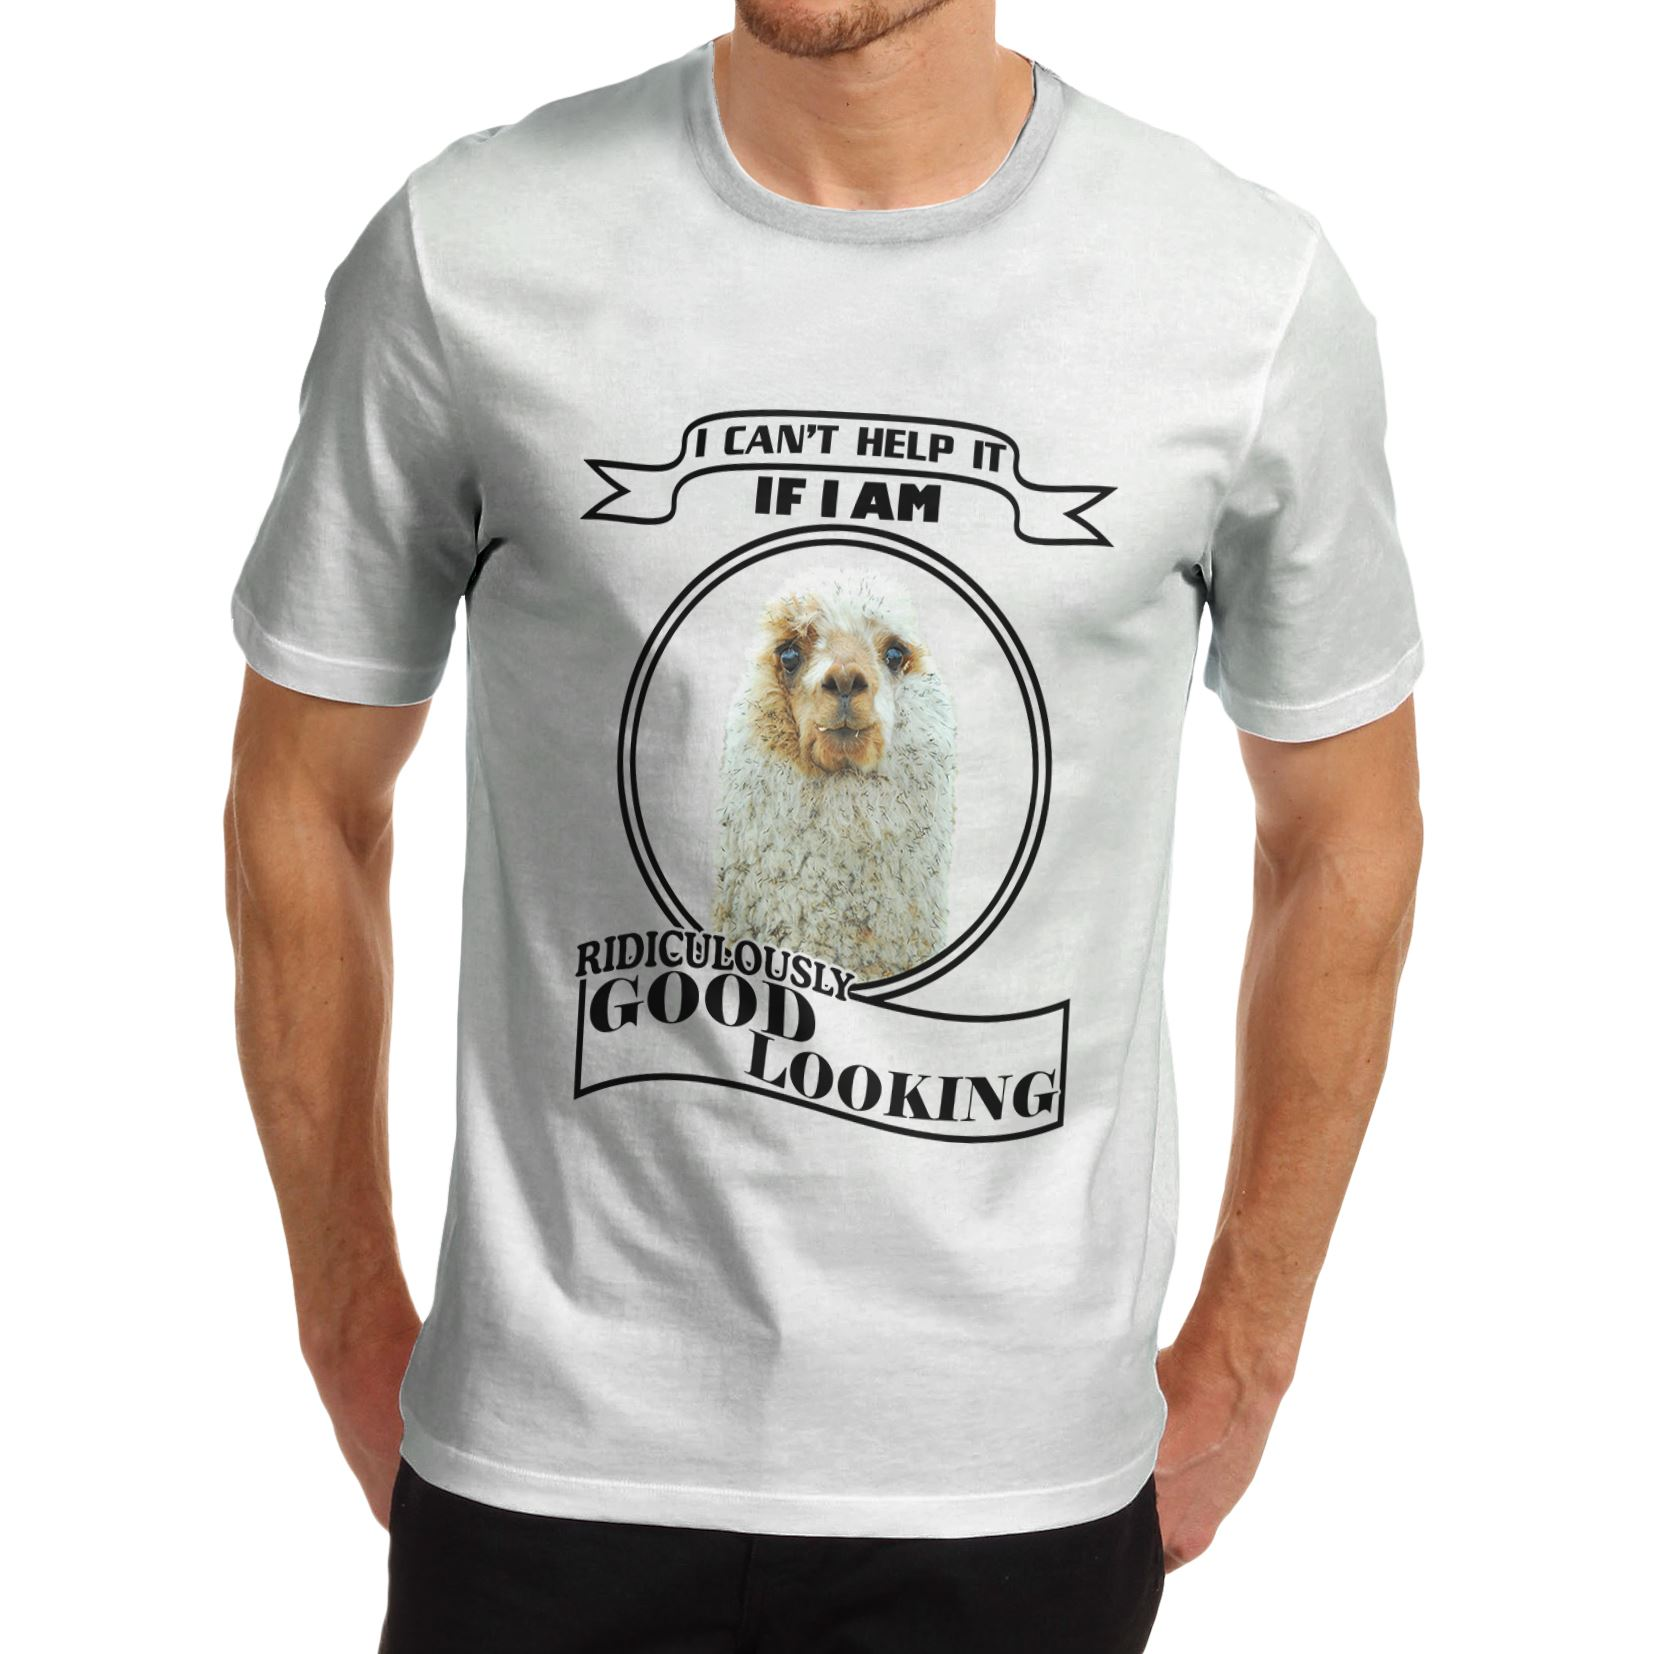 Twisted Envy Men/'s Ridiculously Good Looking Llama Funny T-Shirt